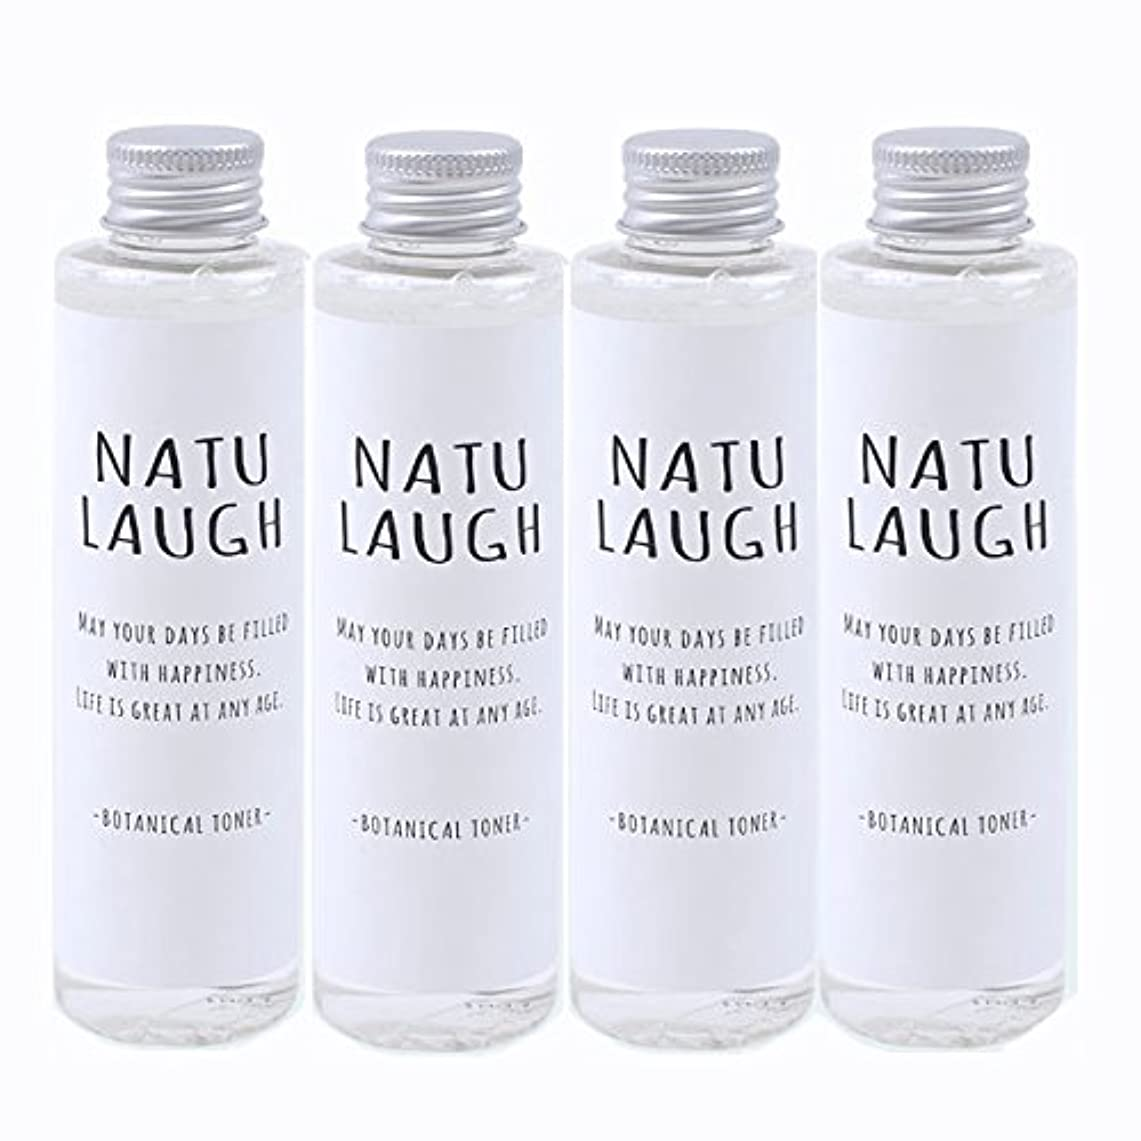 NATU LAUGH ボタニカル 化粧水 150ml - BOTANICAL TONER - (4個)